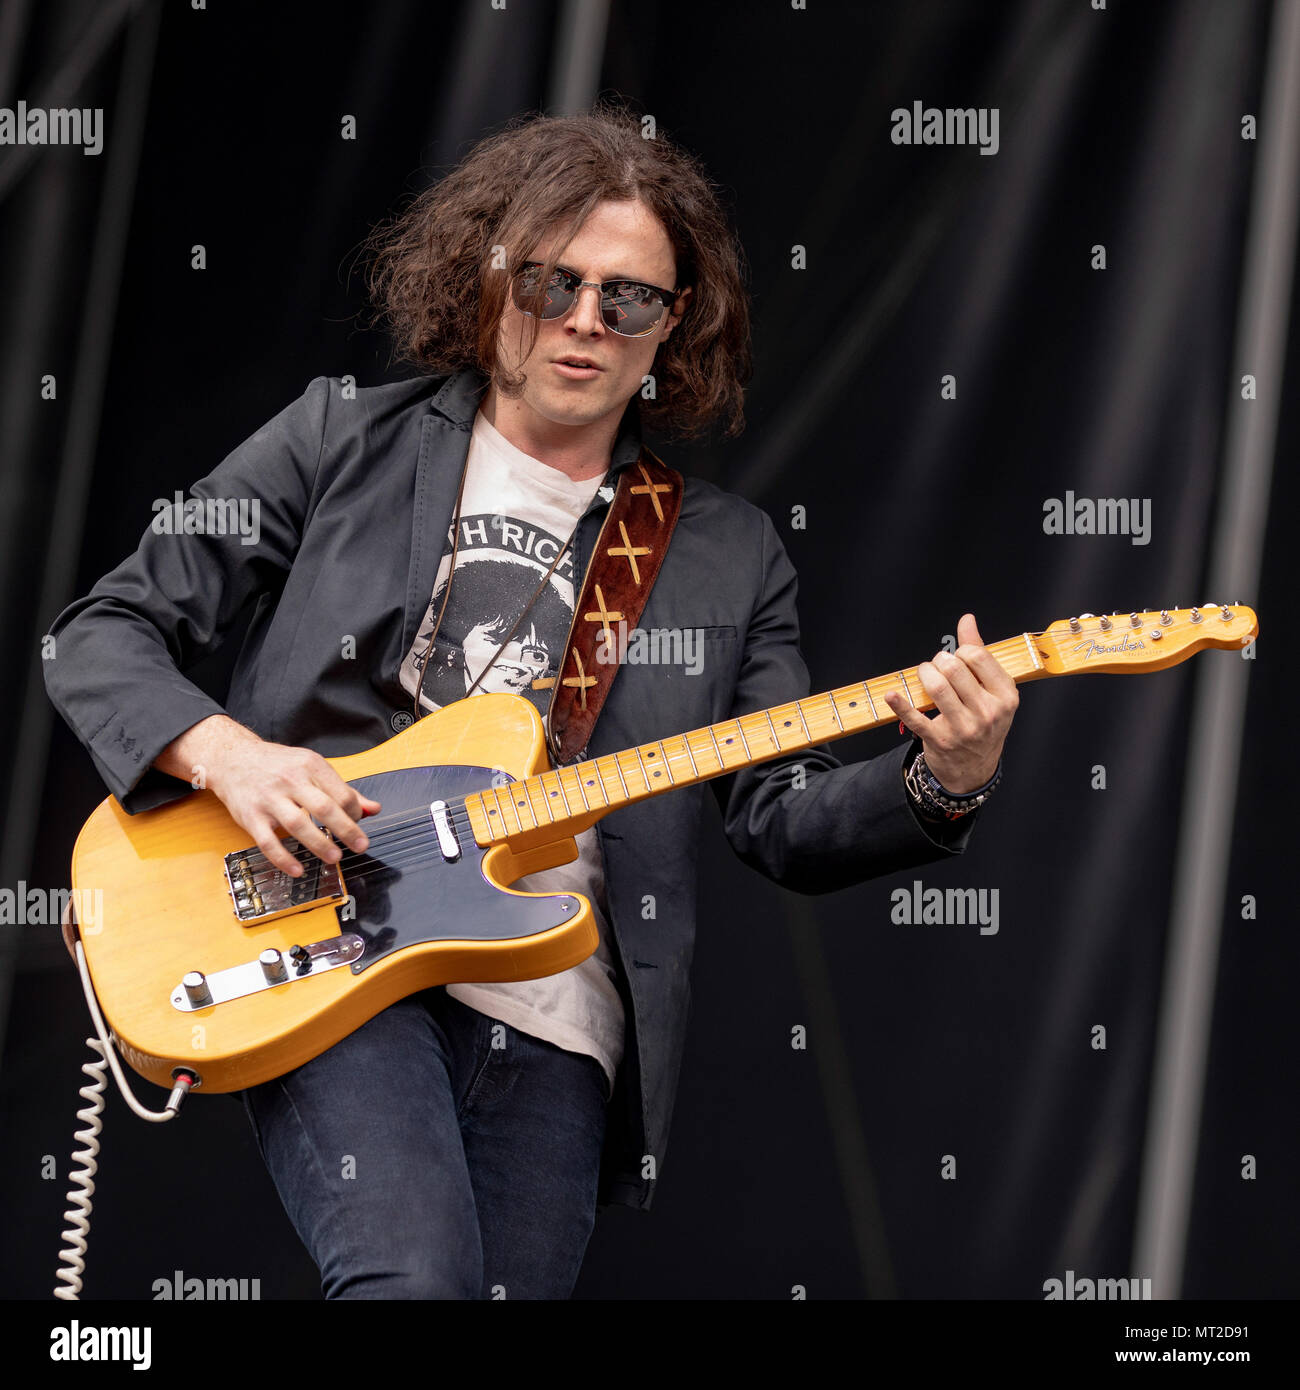 Napa, California, USA. 26th May, 2018. HAMISH ANDERSON during BottleRock Music Festival at Napa Valley Expo in Napa, California Credit: Daniel DeSlover/ZUMA Wire/Alamy Live News - Stock Image